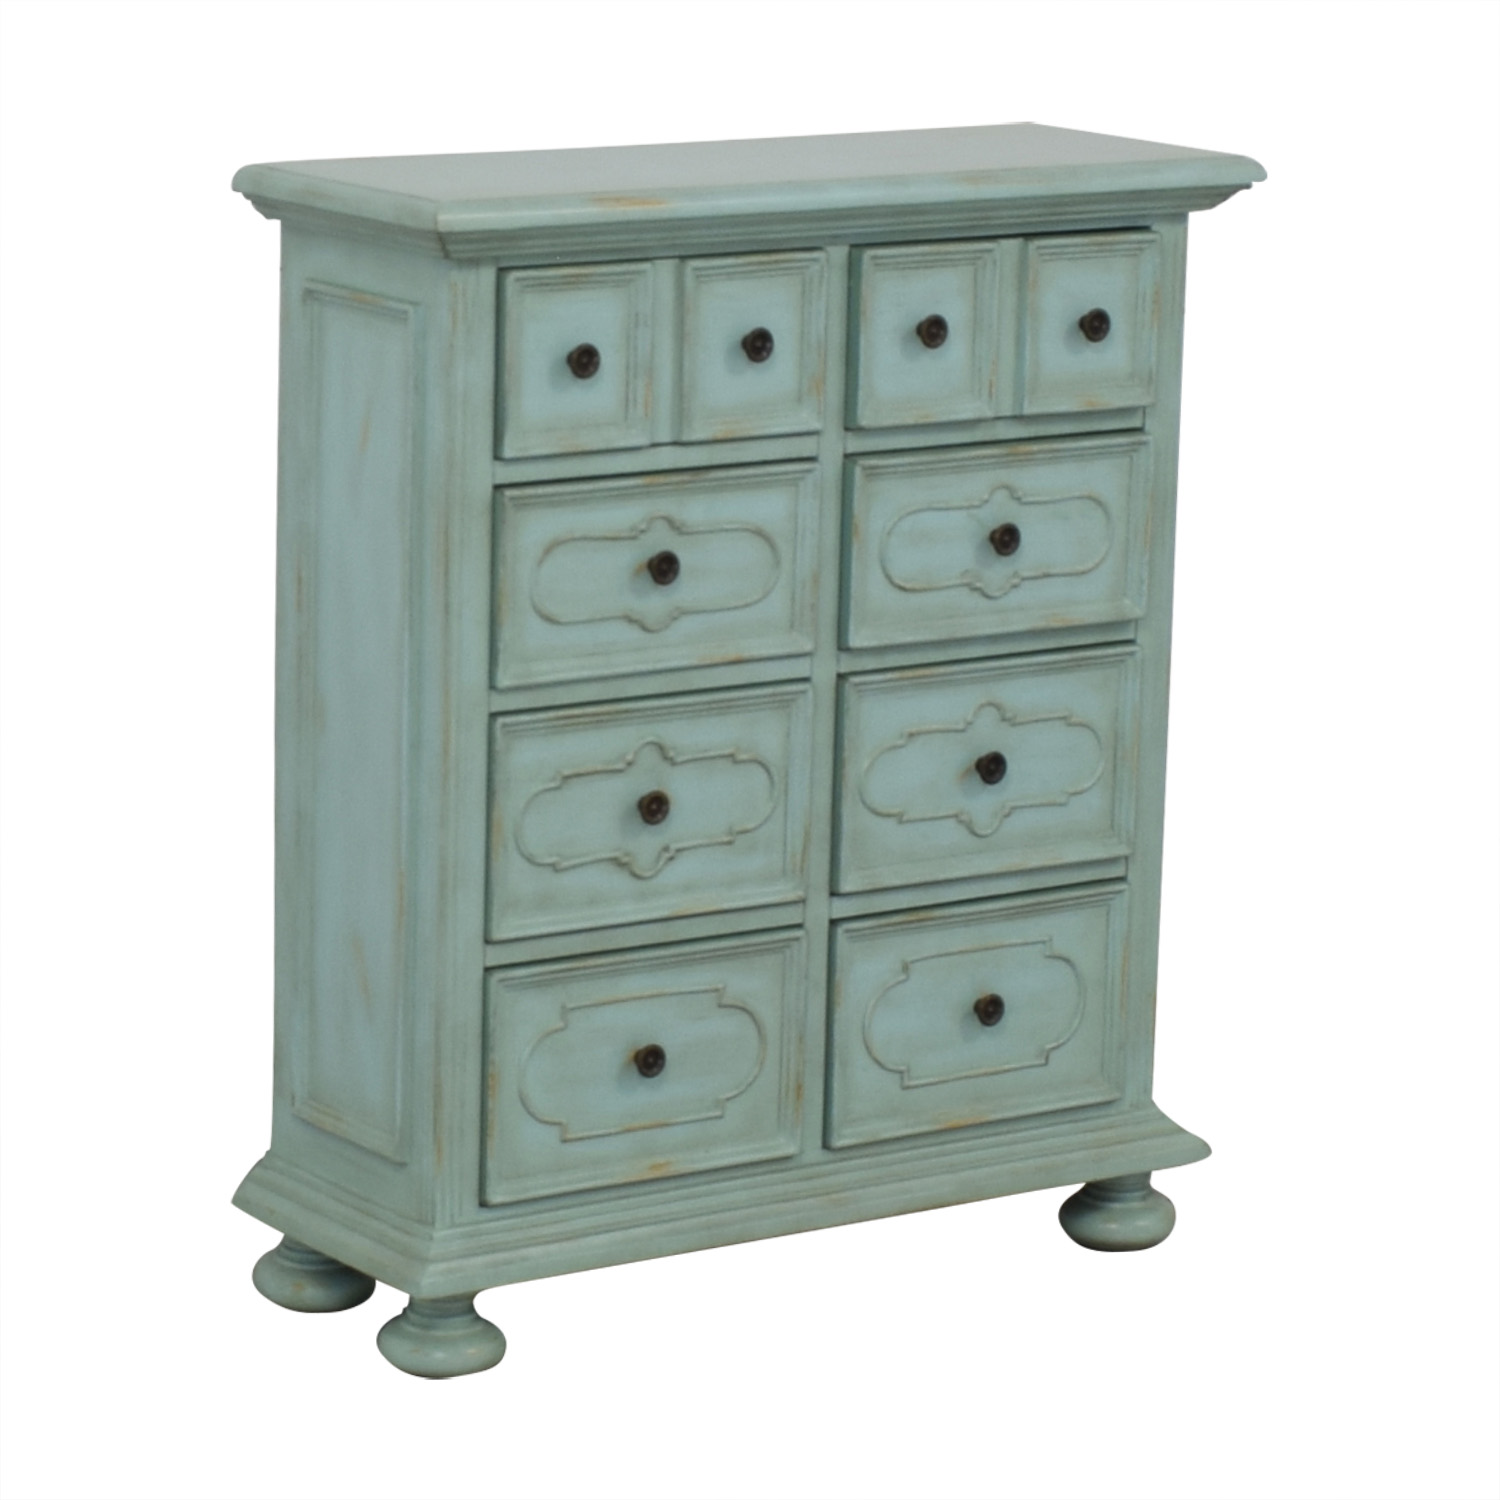 buy Joss & Main Distressed Dresser Joss & Main Storage